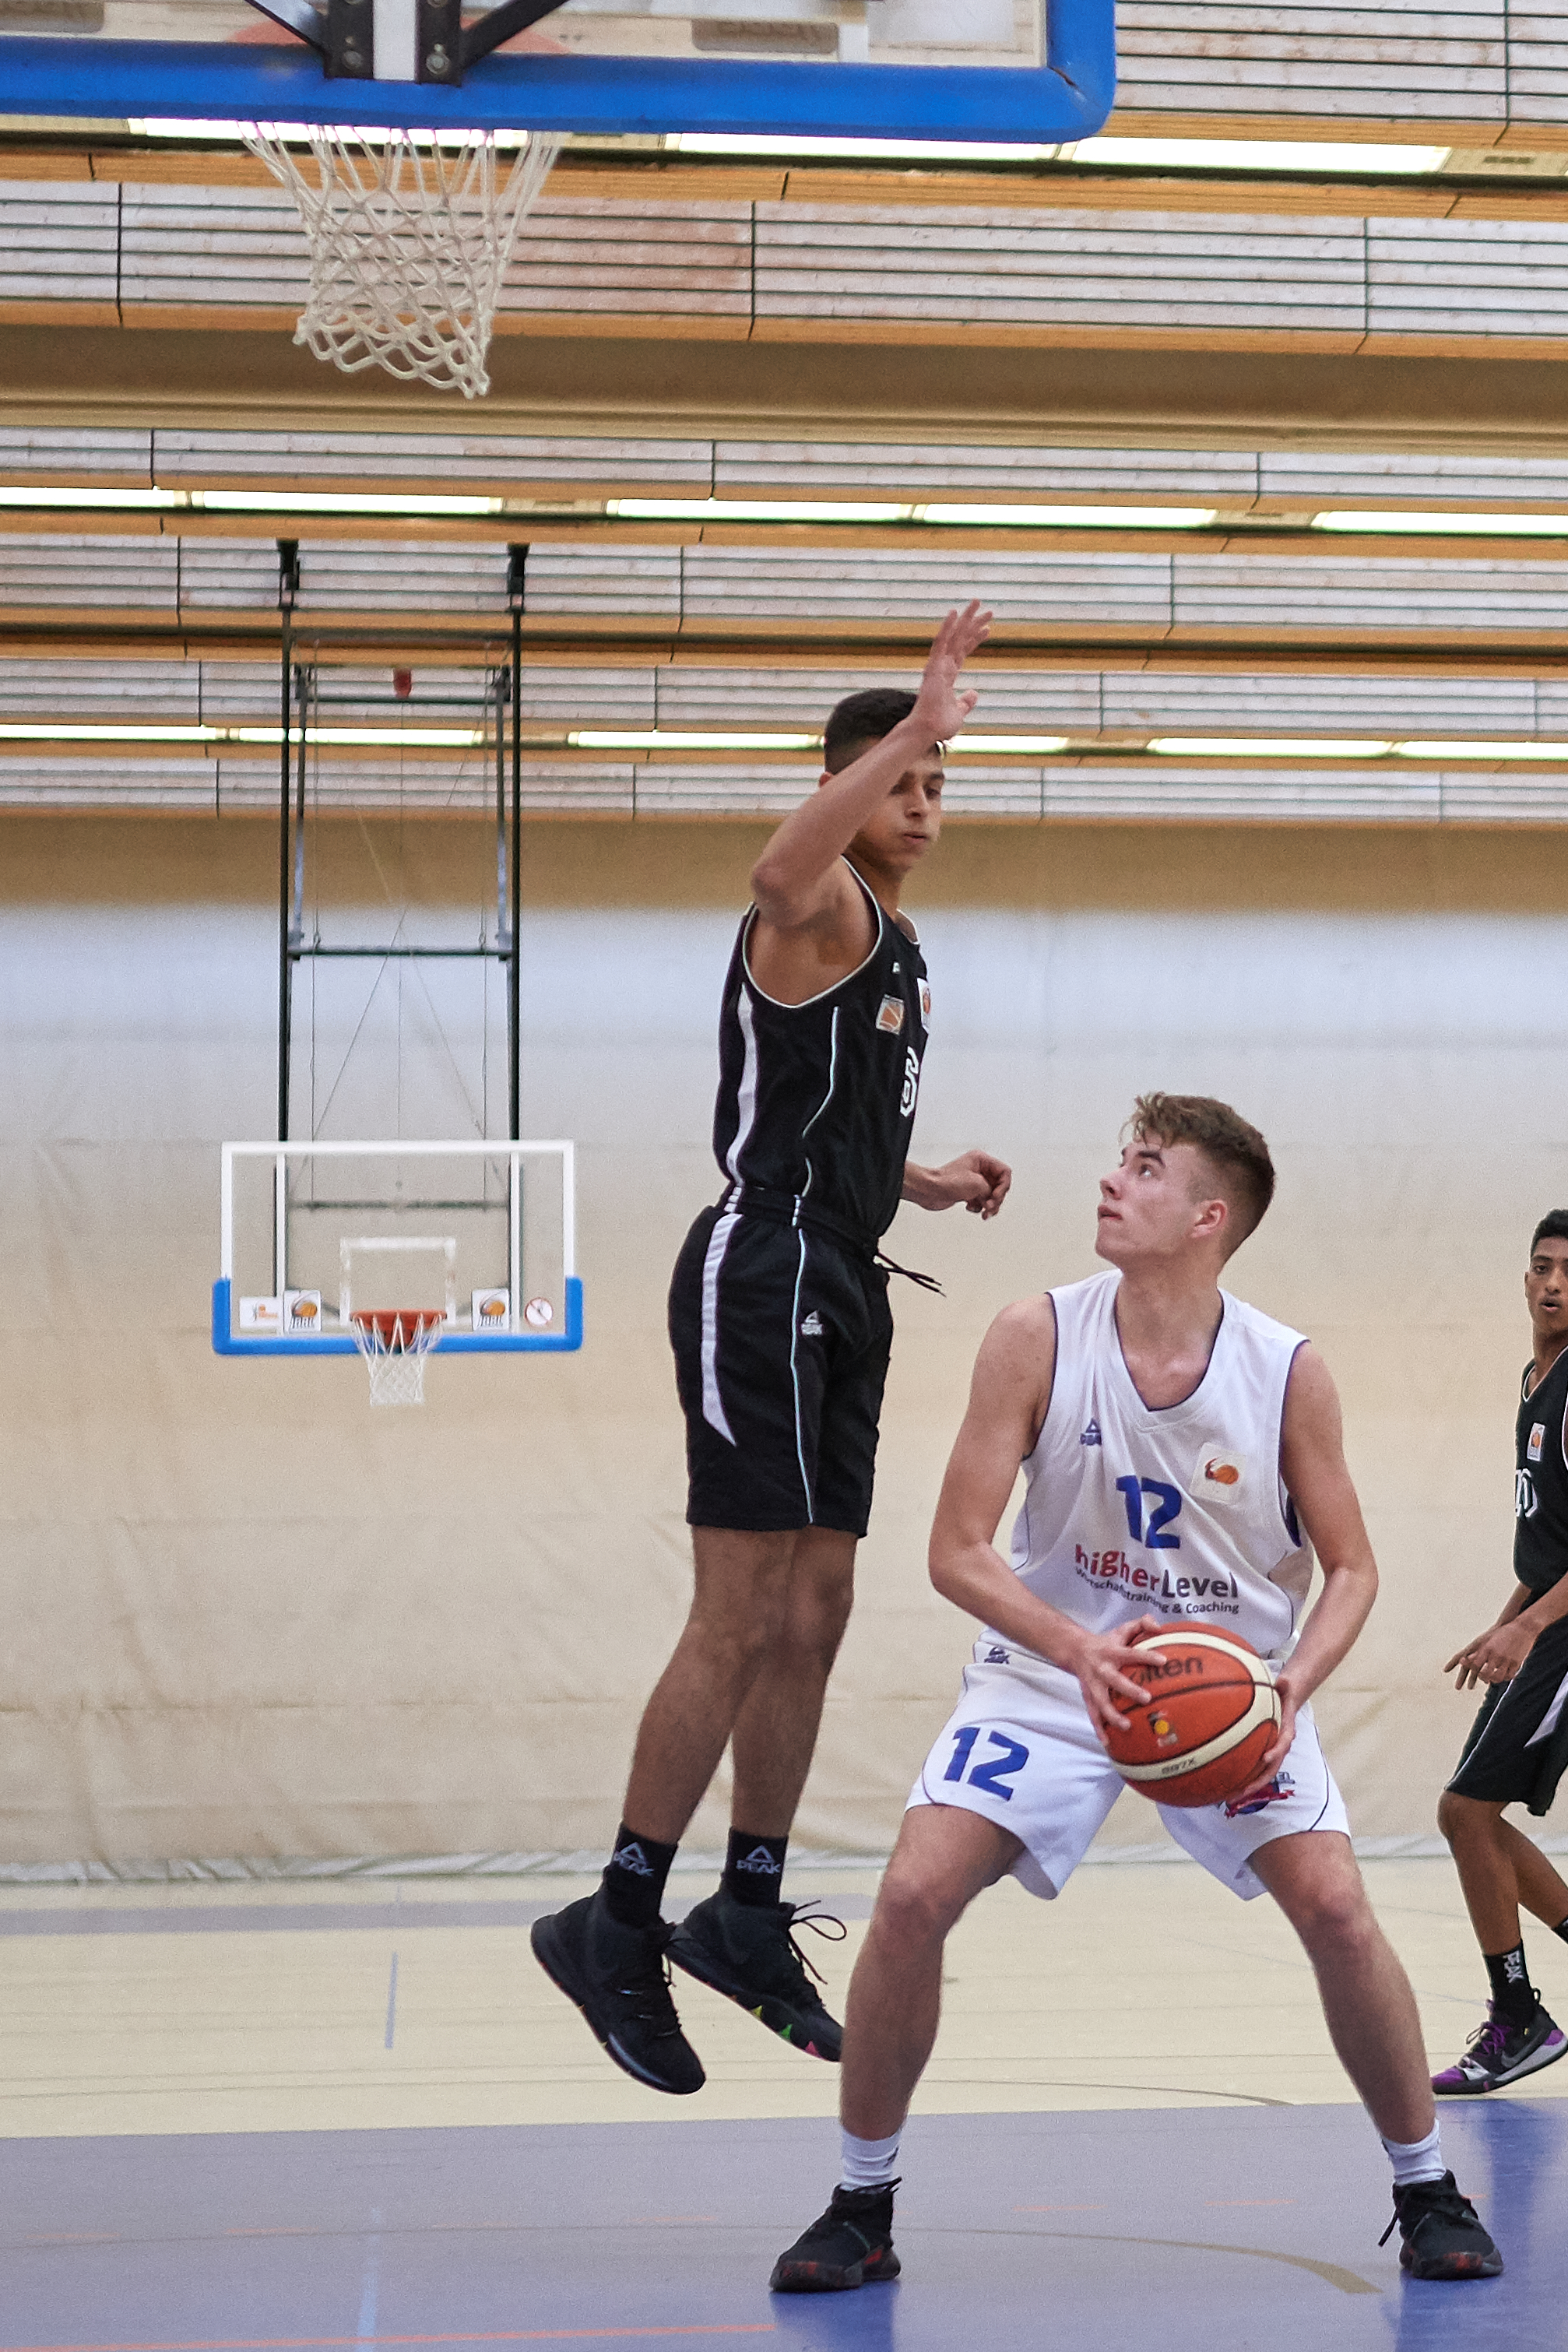 Higherlevel-TUSLI-JBBL-20191019-9610